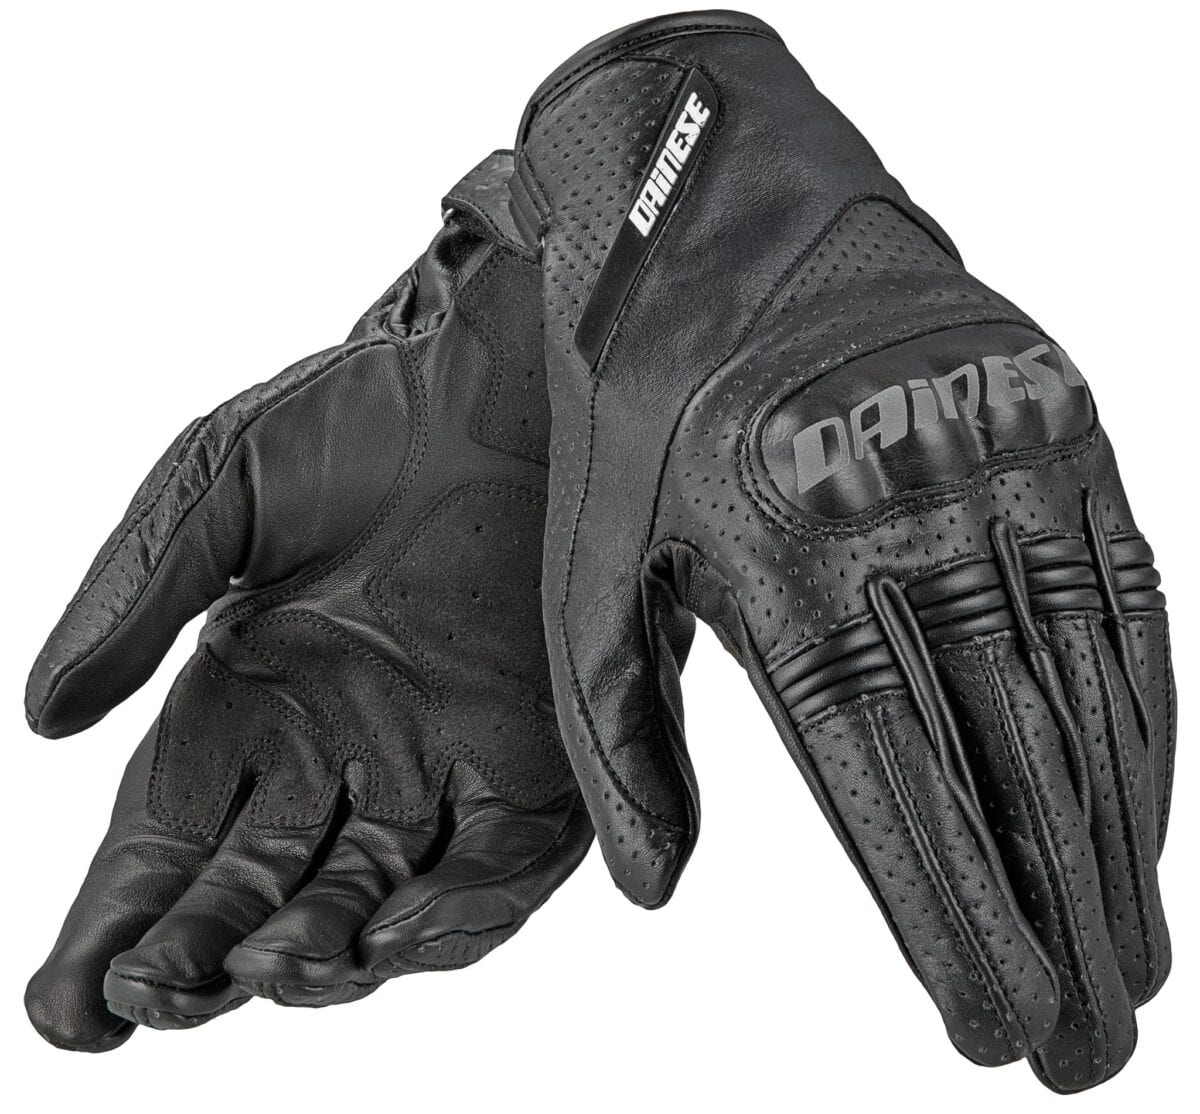 Motorcycle gloves guide - Some Manufacturers Offer Gloves Which Cater For Ladies Hands Which Are Often Thinner And Smaller Than Men S